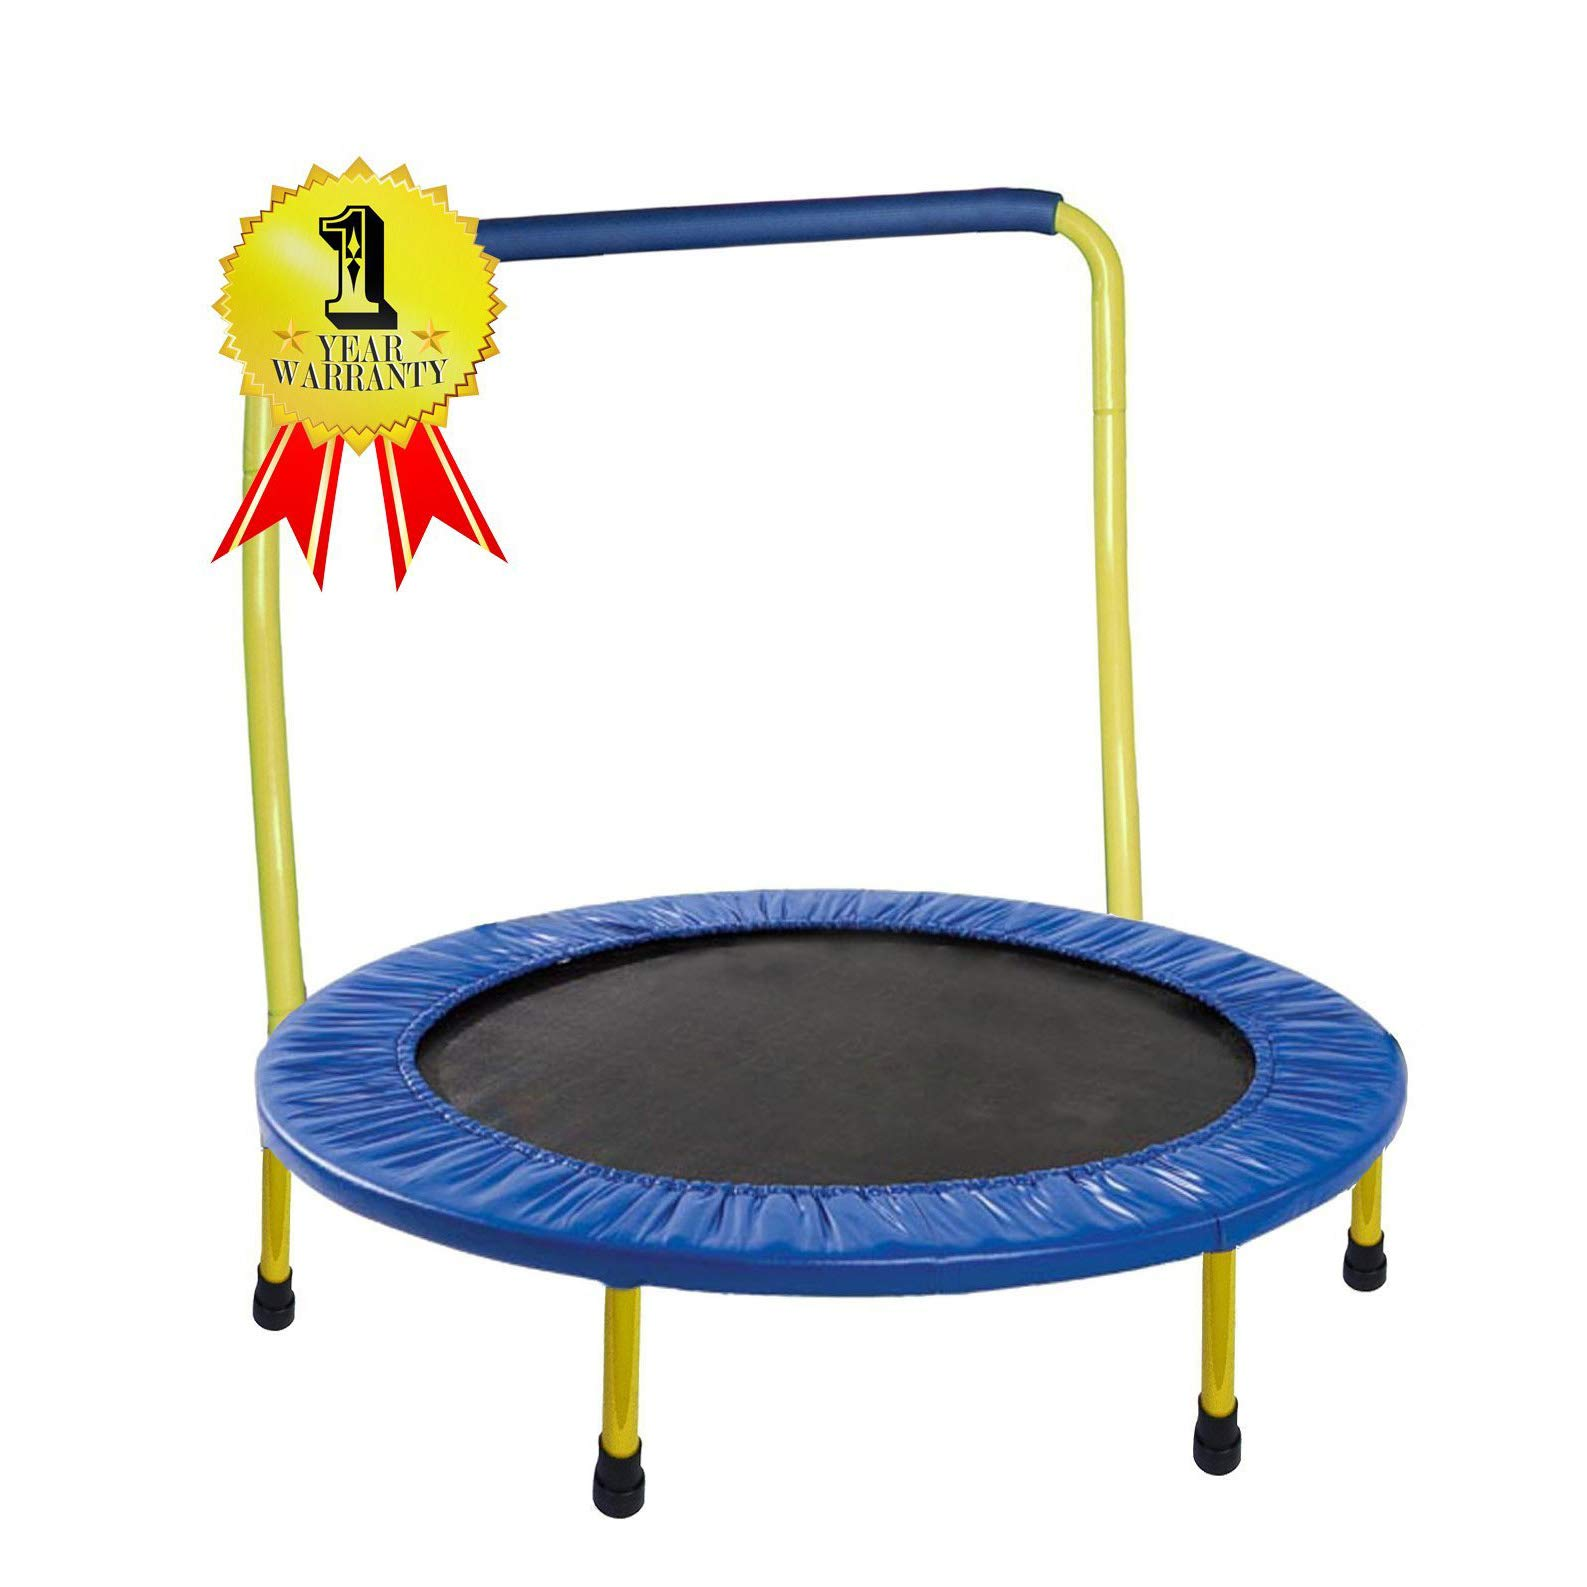 JumJoe Kids Trampoline - 36 inch, with Handle bar, Safety, Portable - 1 Year Warranty. (Yellow) by JumJoe